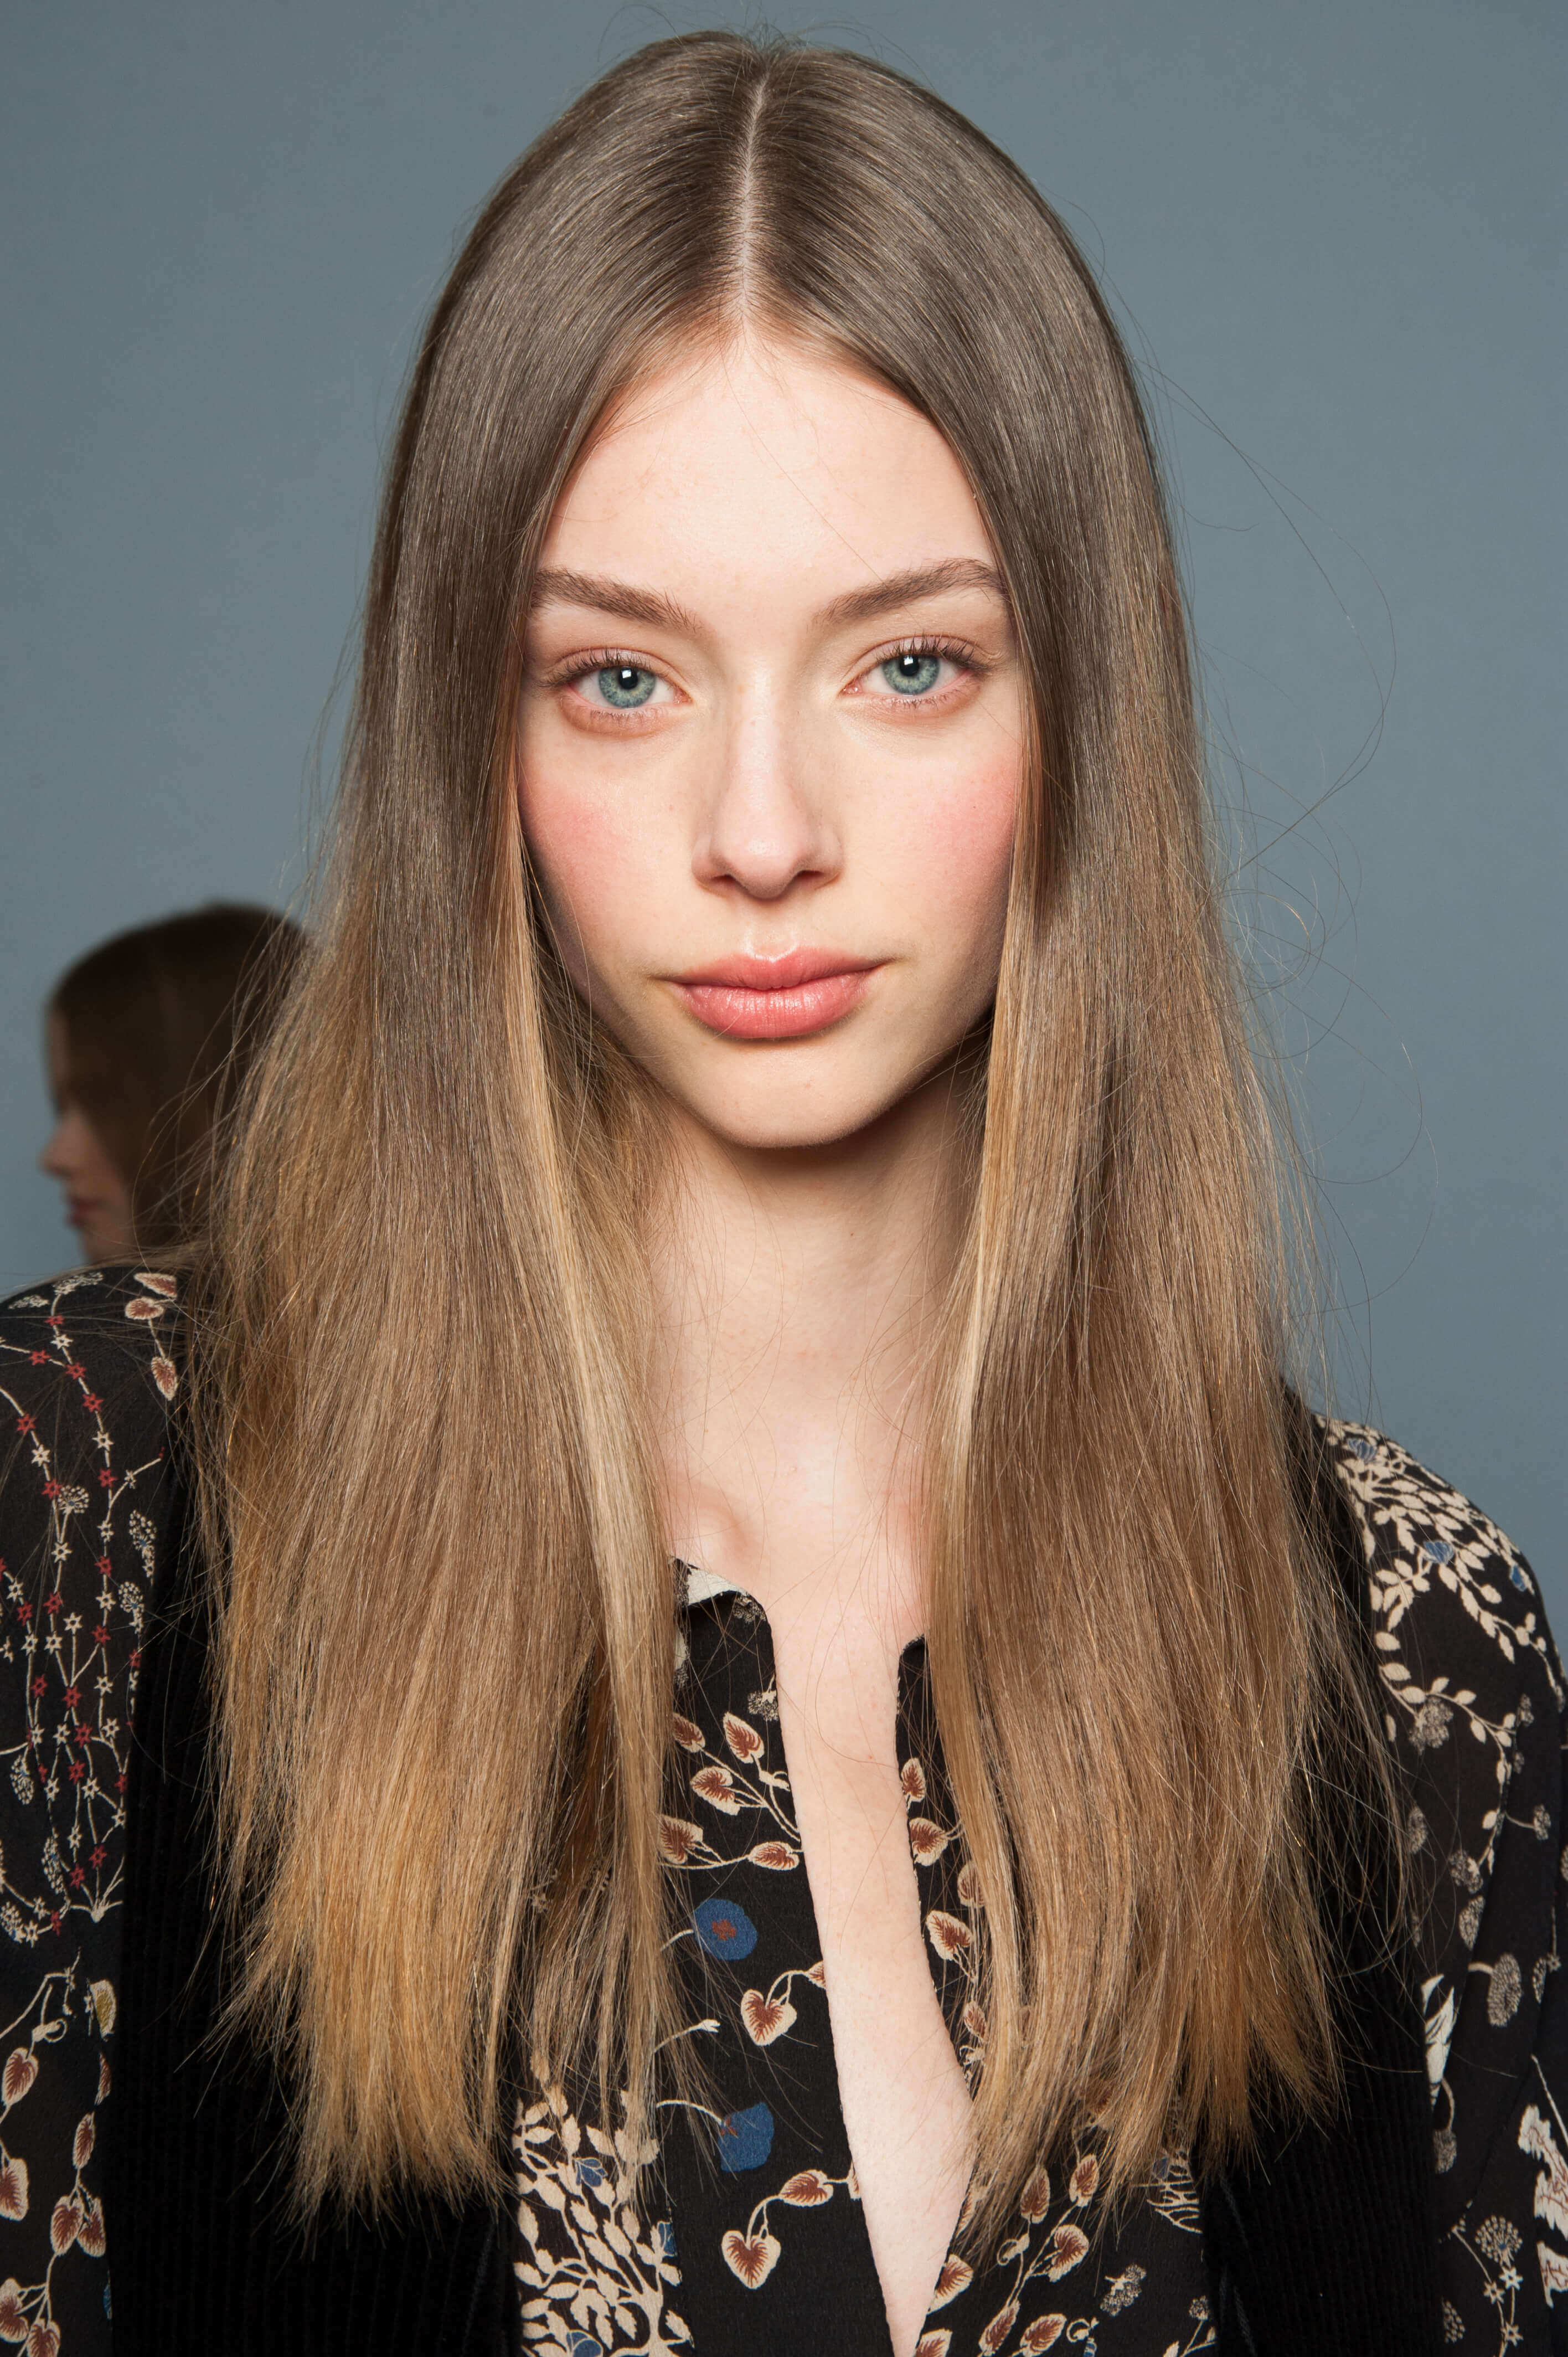 keratin treatment: close up shot of model with sleek, long hair, wearing a floral black dress and posing backstage